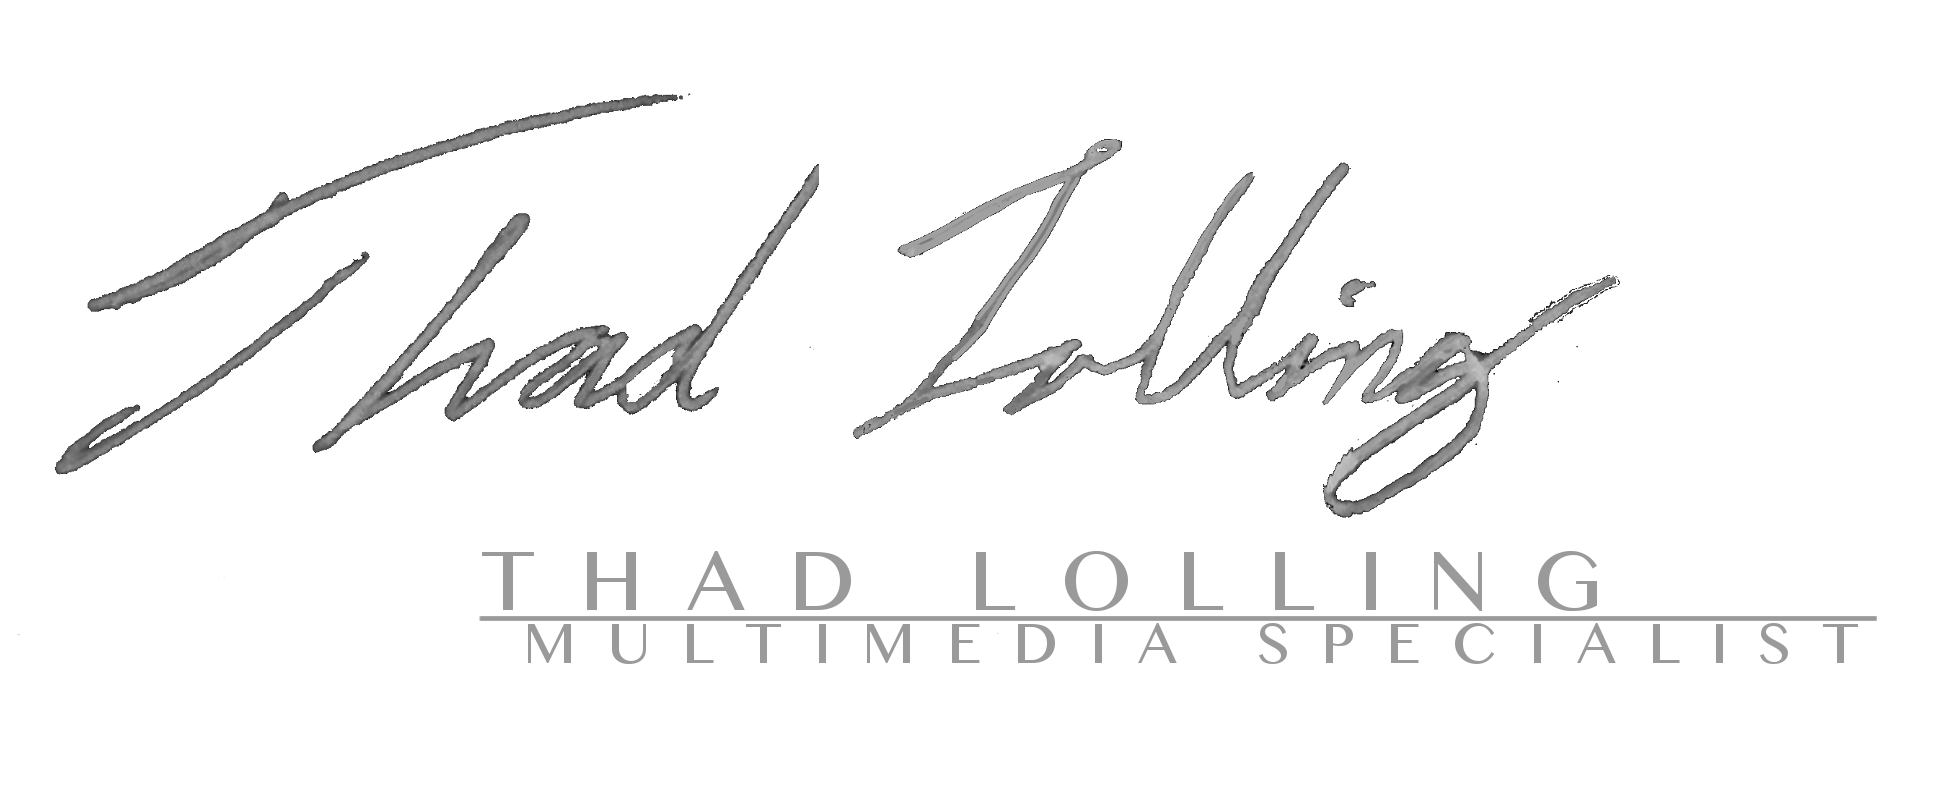 Thad Lolling